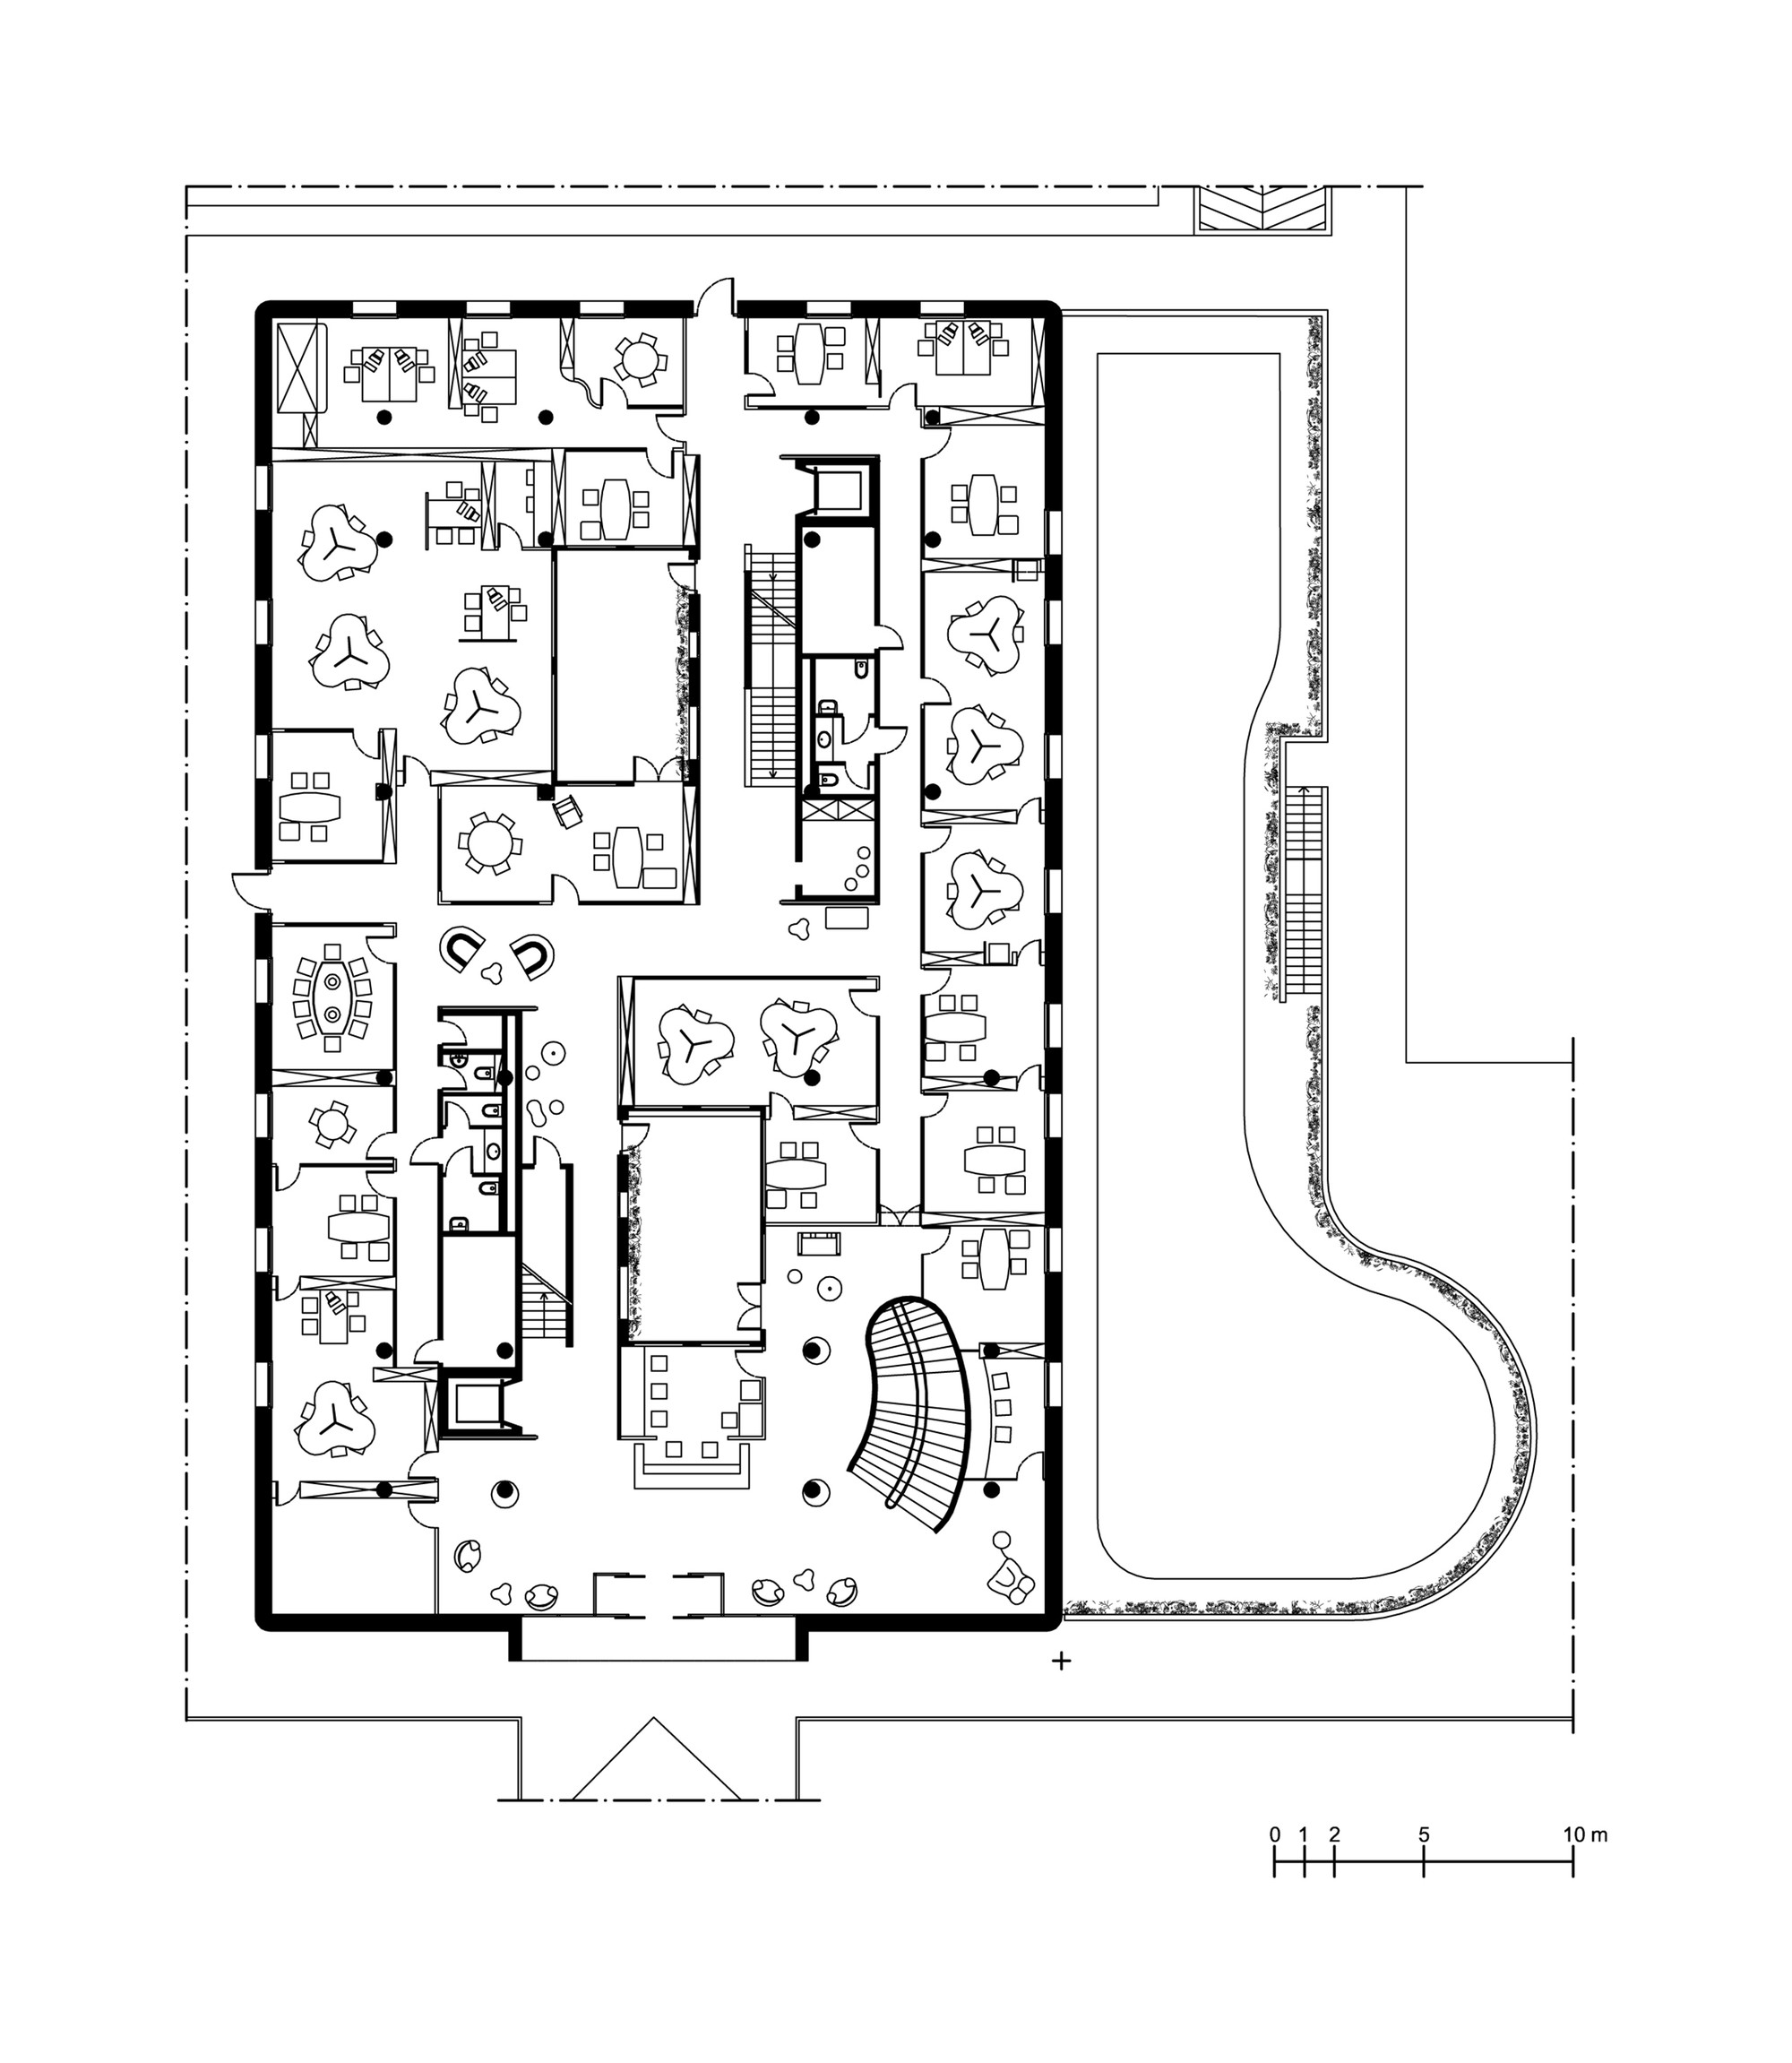 Gallery Of Bank Of Pisa And Fornacette New Hq Massimo Mariani 24